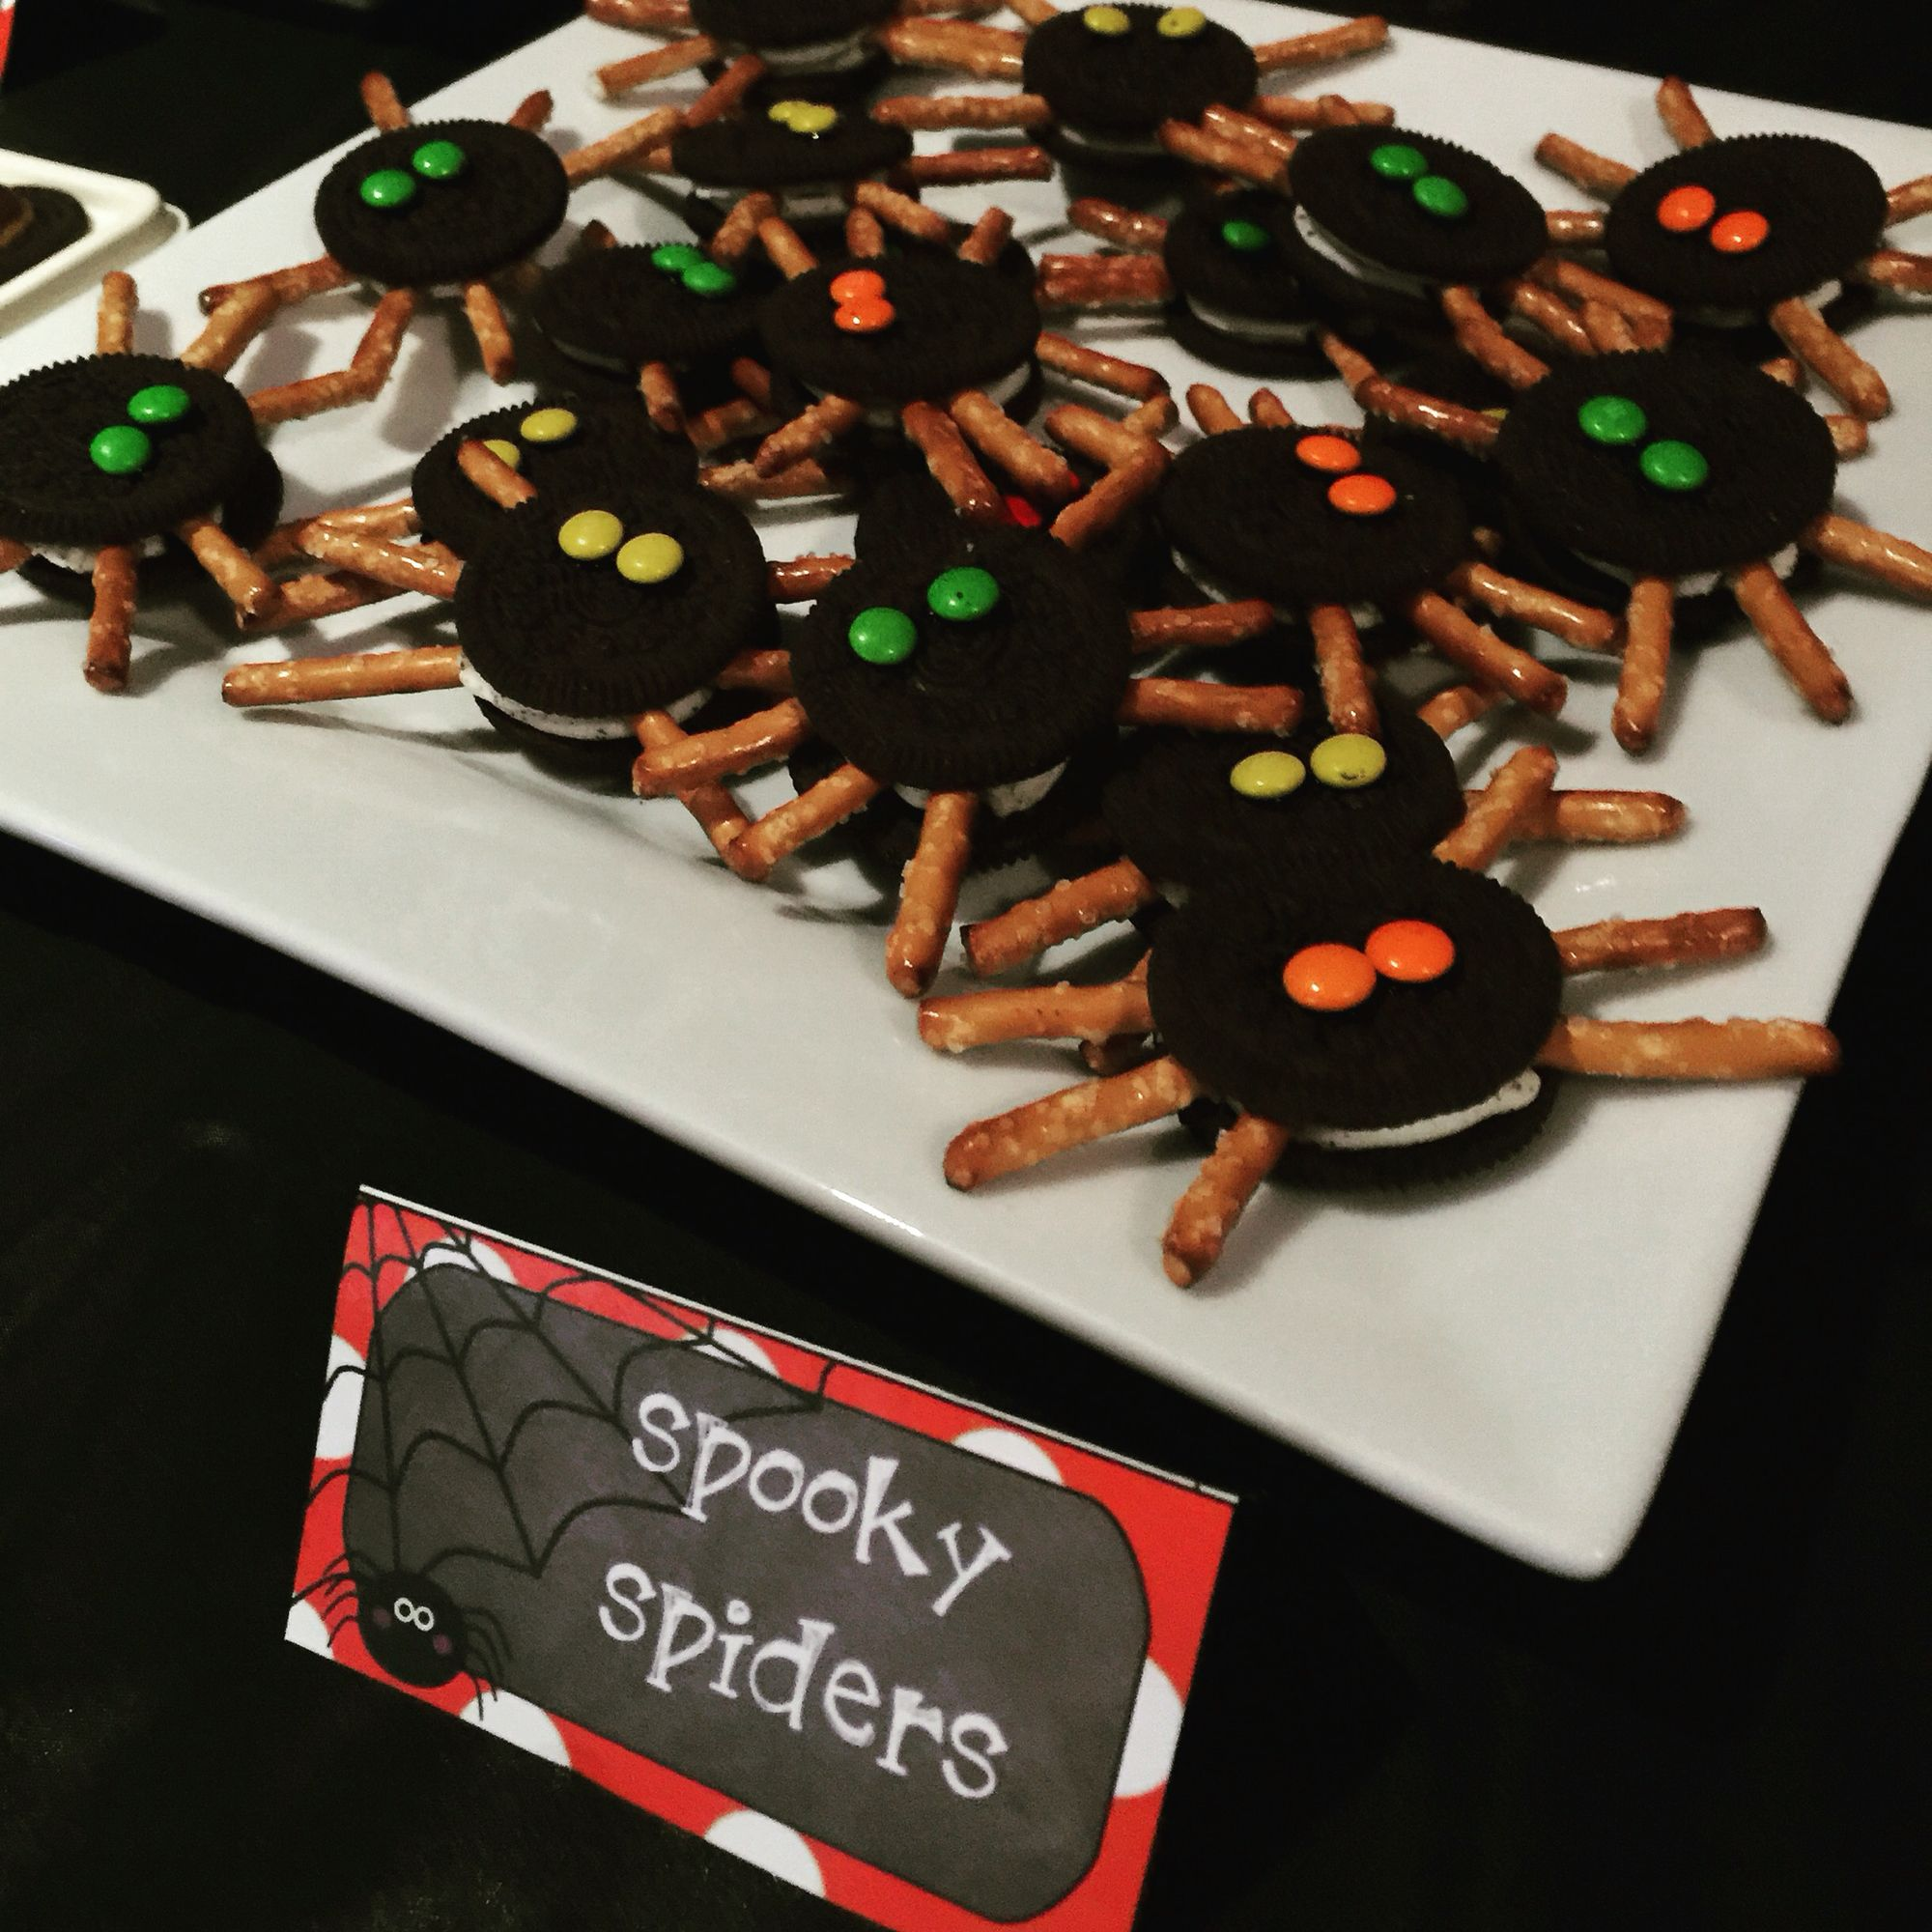 Spooky spiders for Hotel Transylvania Party                              …